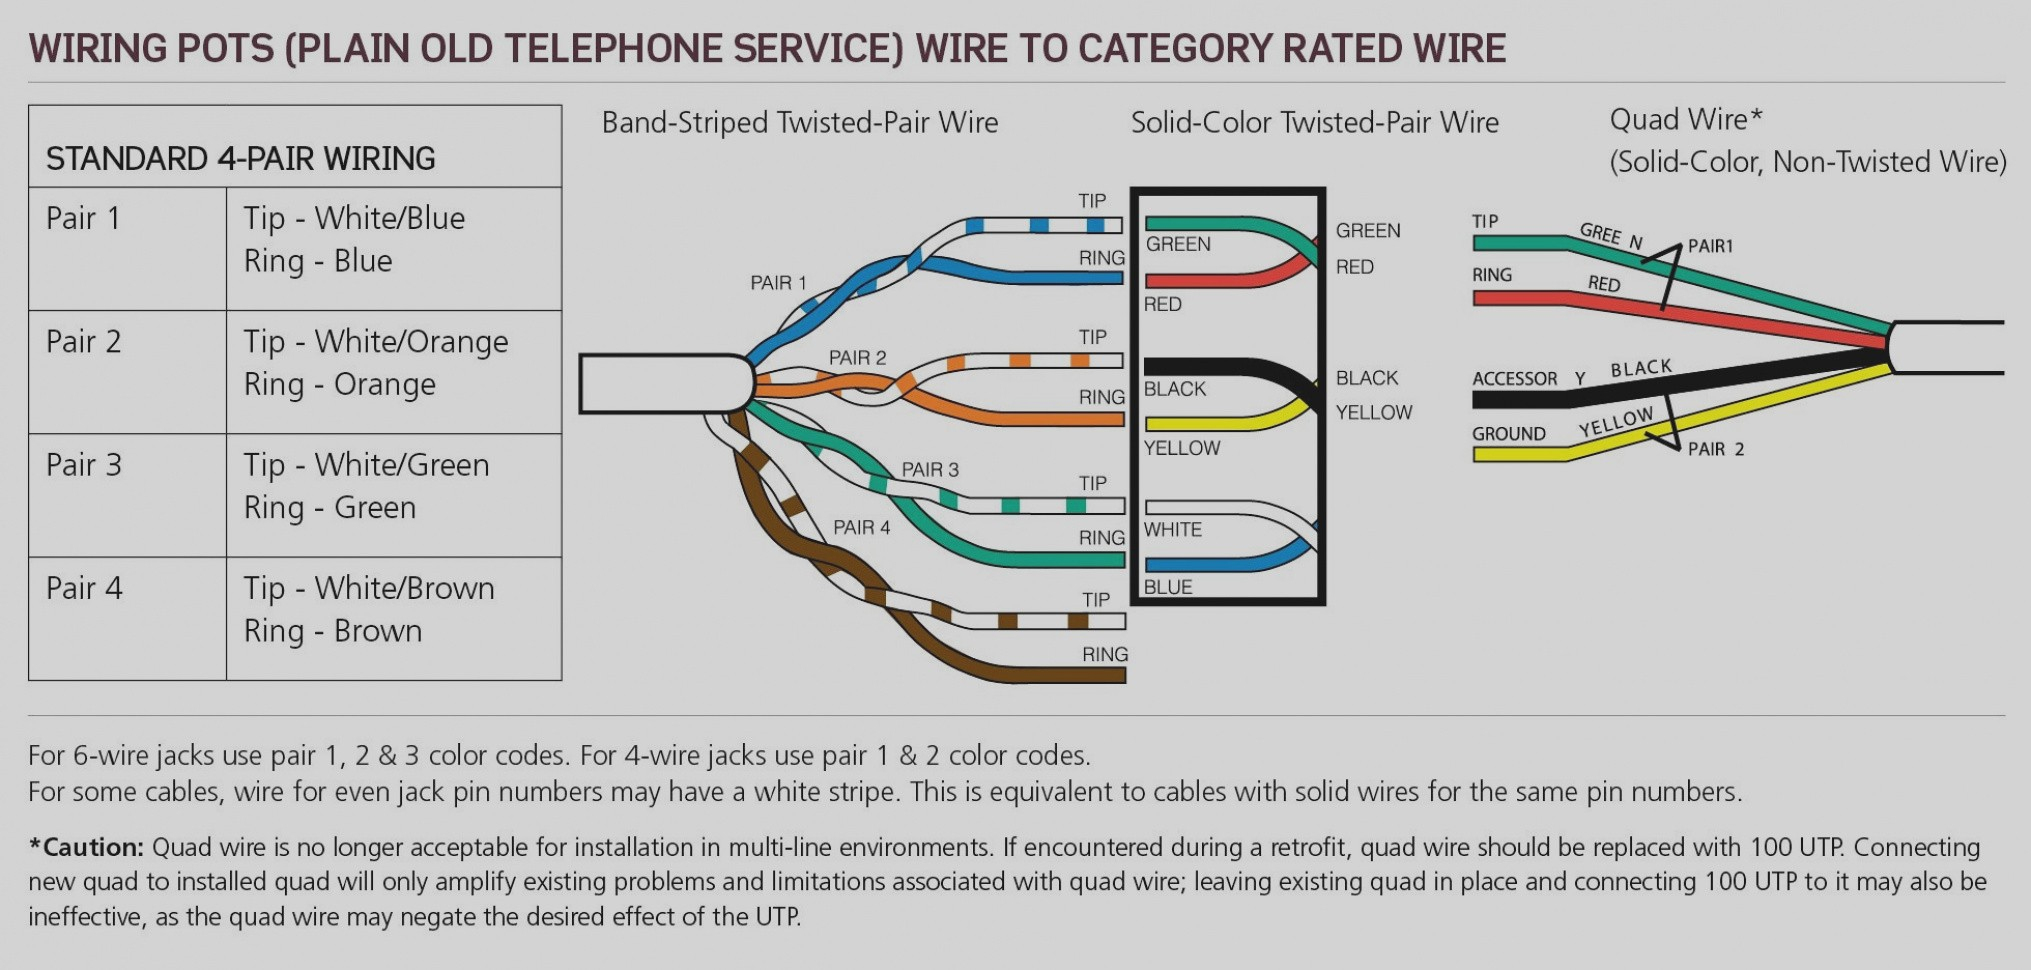 Cat 3 Wiring Color Code - Wiring Diagram Blog - Cat 3 Wiring Diagram